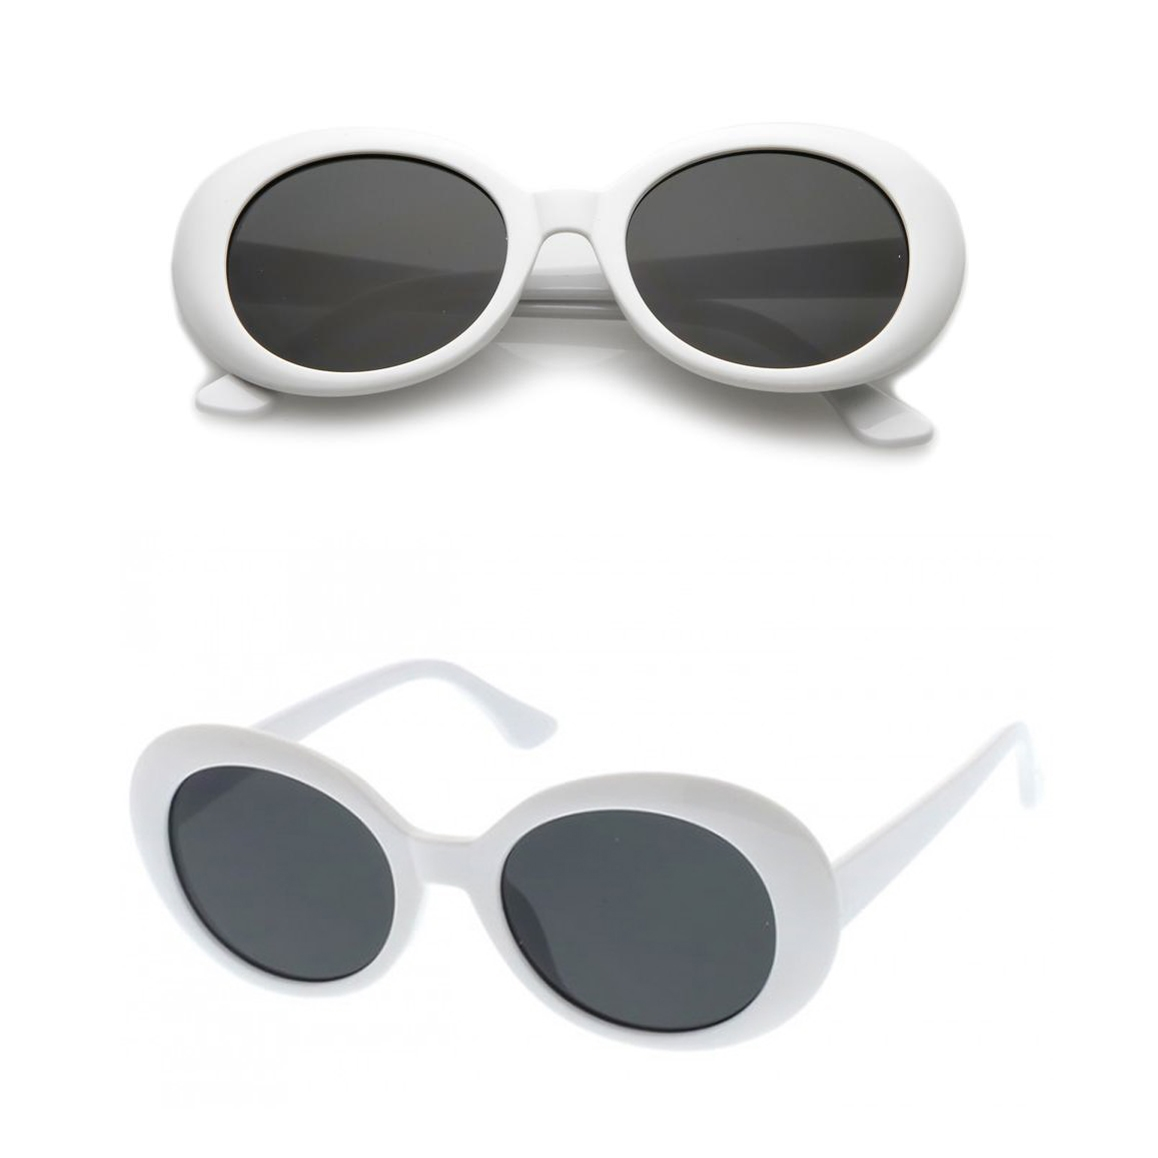 2b16b3ff19ce7 Polly 53MM Oversized Oval Clout Sunglasses